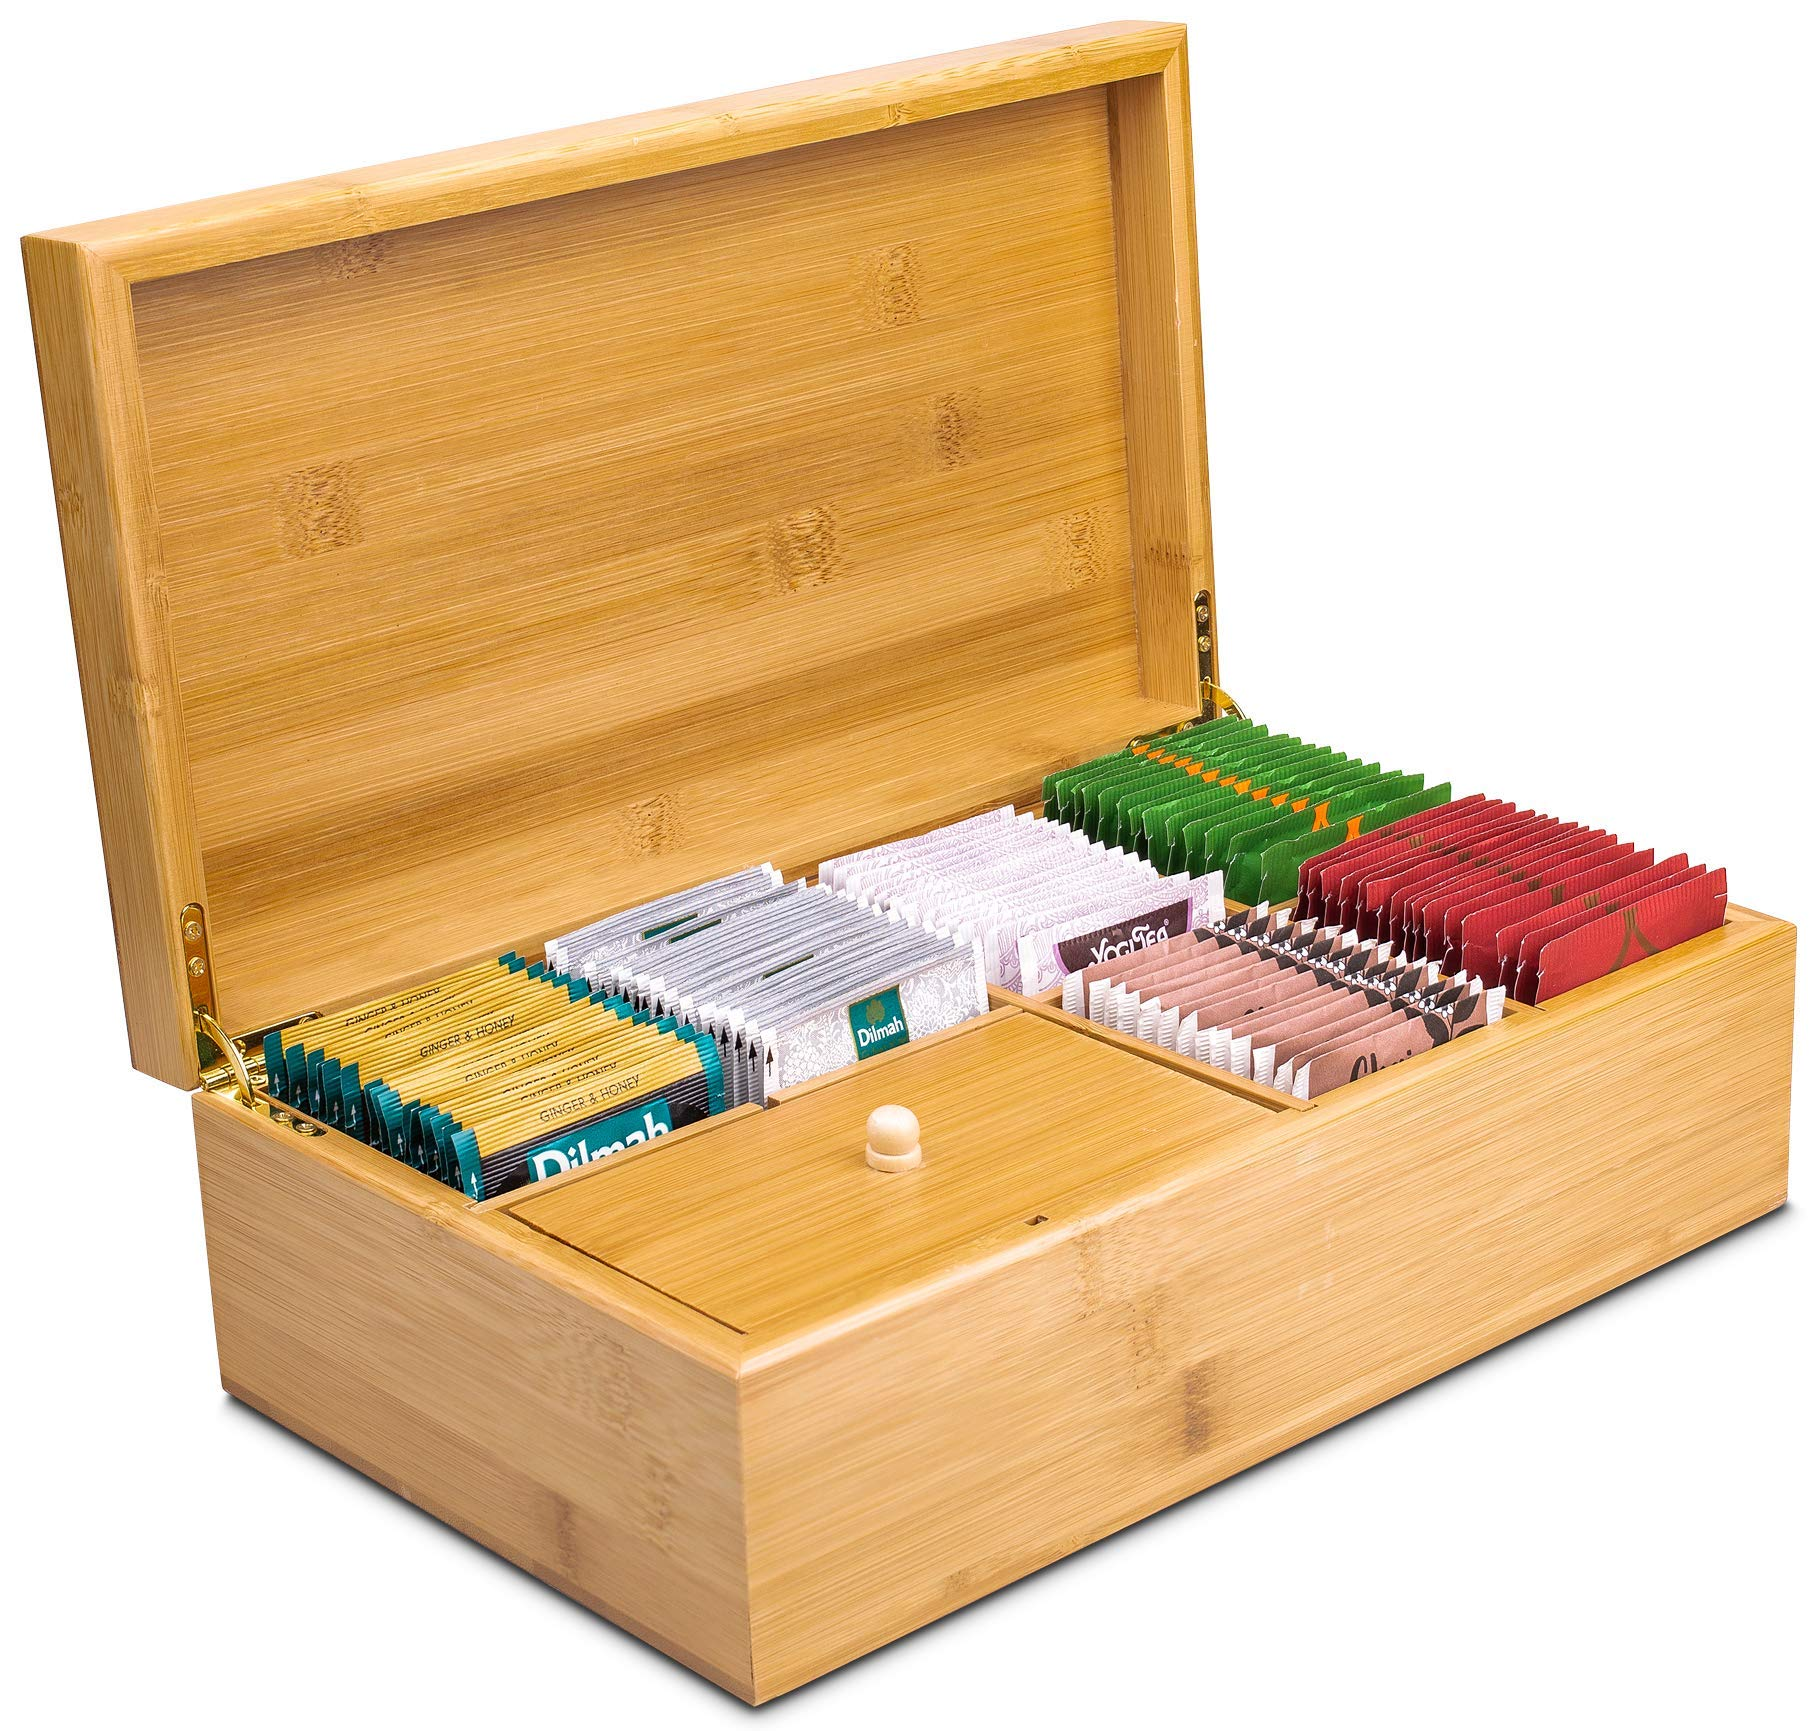 Lyevon Tea Storage Organizer Bamboo Chest Box with 8 Adjustable Compartments for Assorted Tea Bags or Spices -holds 125 Tea Bags by Lyevon (Image #4)